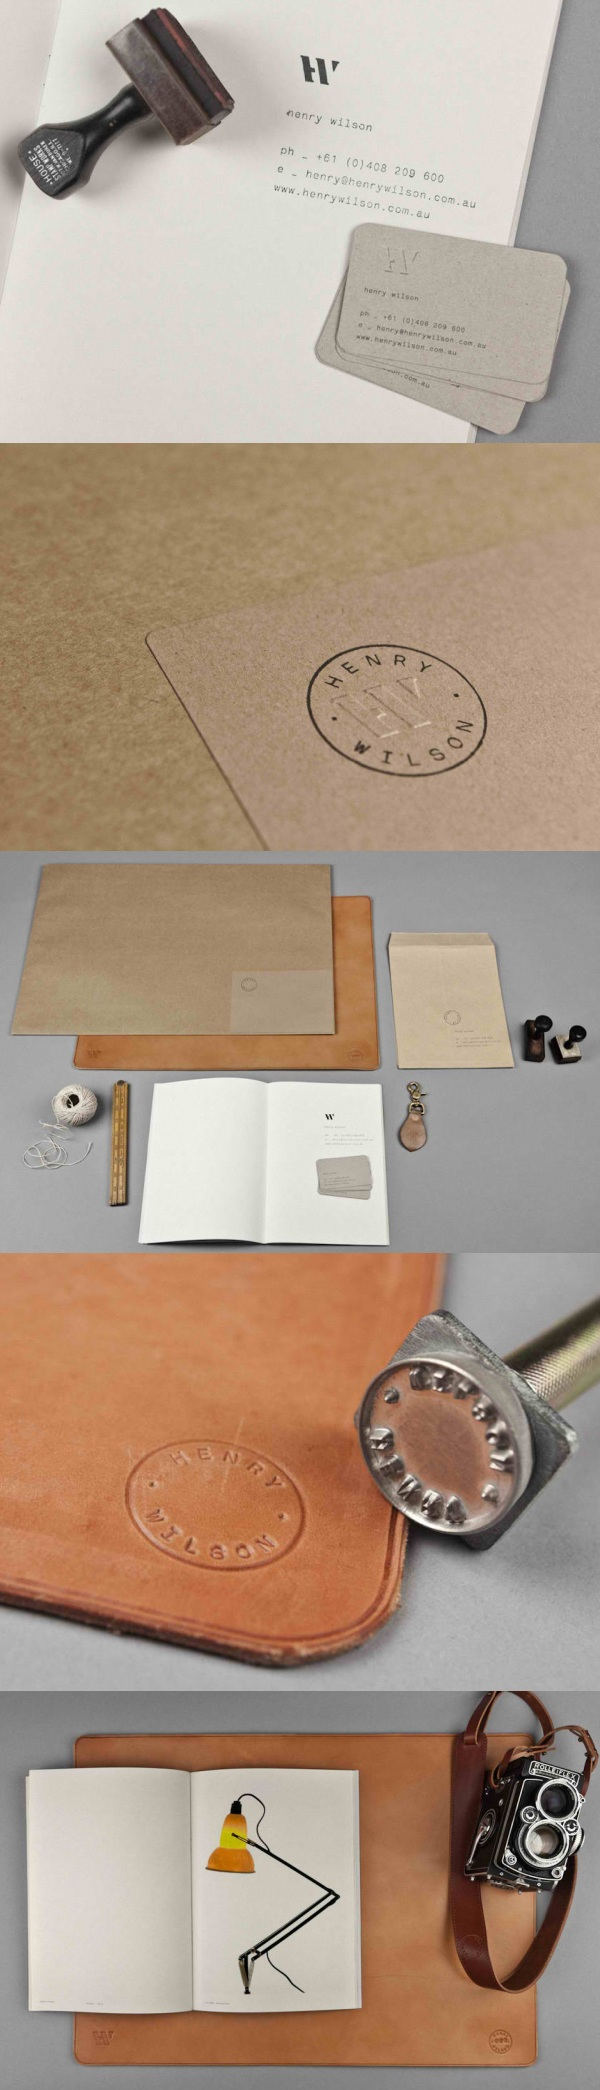 Henry Wilson Business Card & Brand Identity